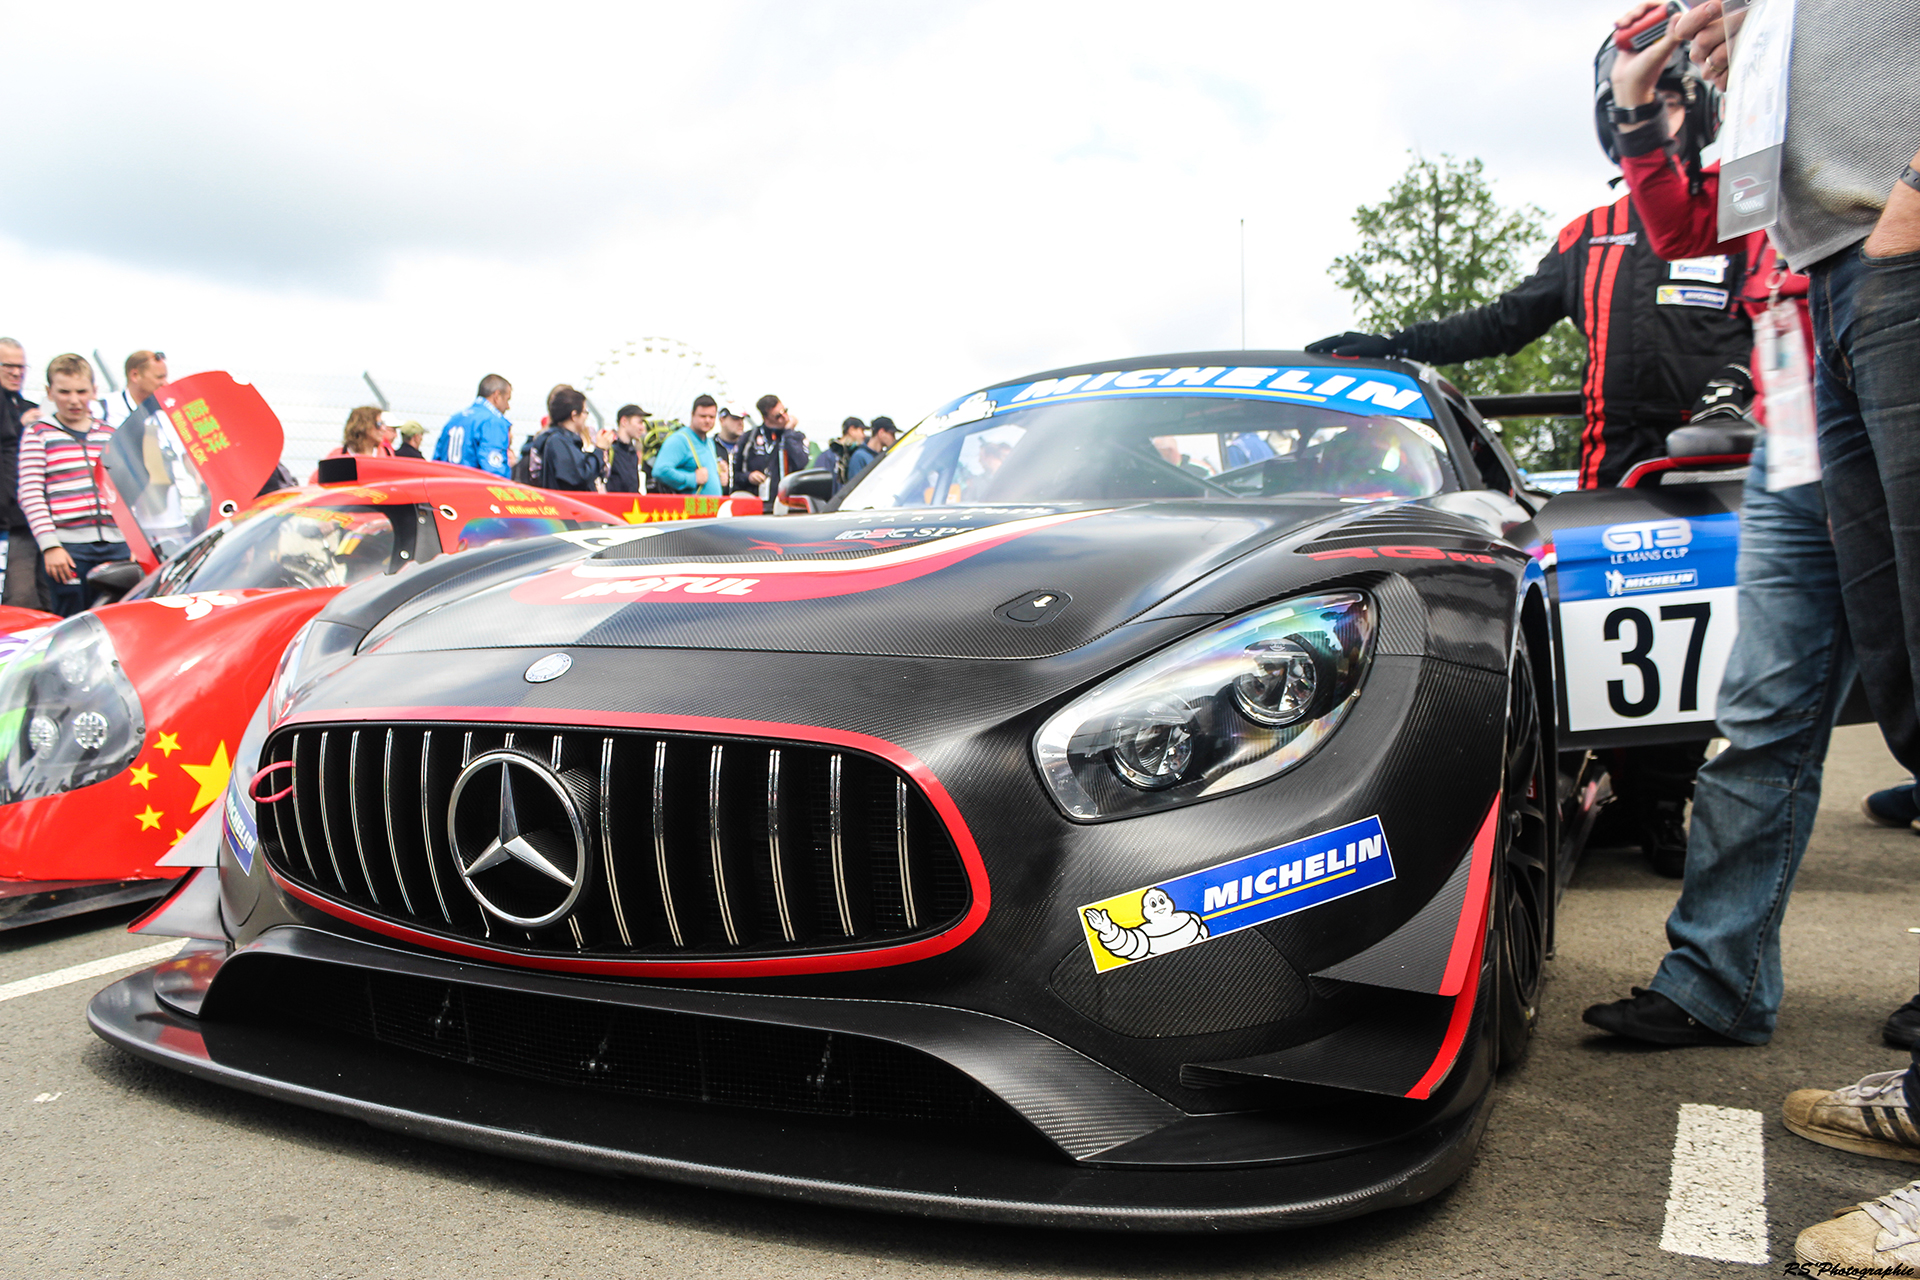 Road to Le Mans 2016 - AMG GT3 - Arnaud Demasier RS Photographie